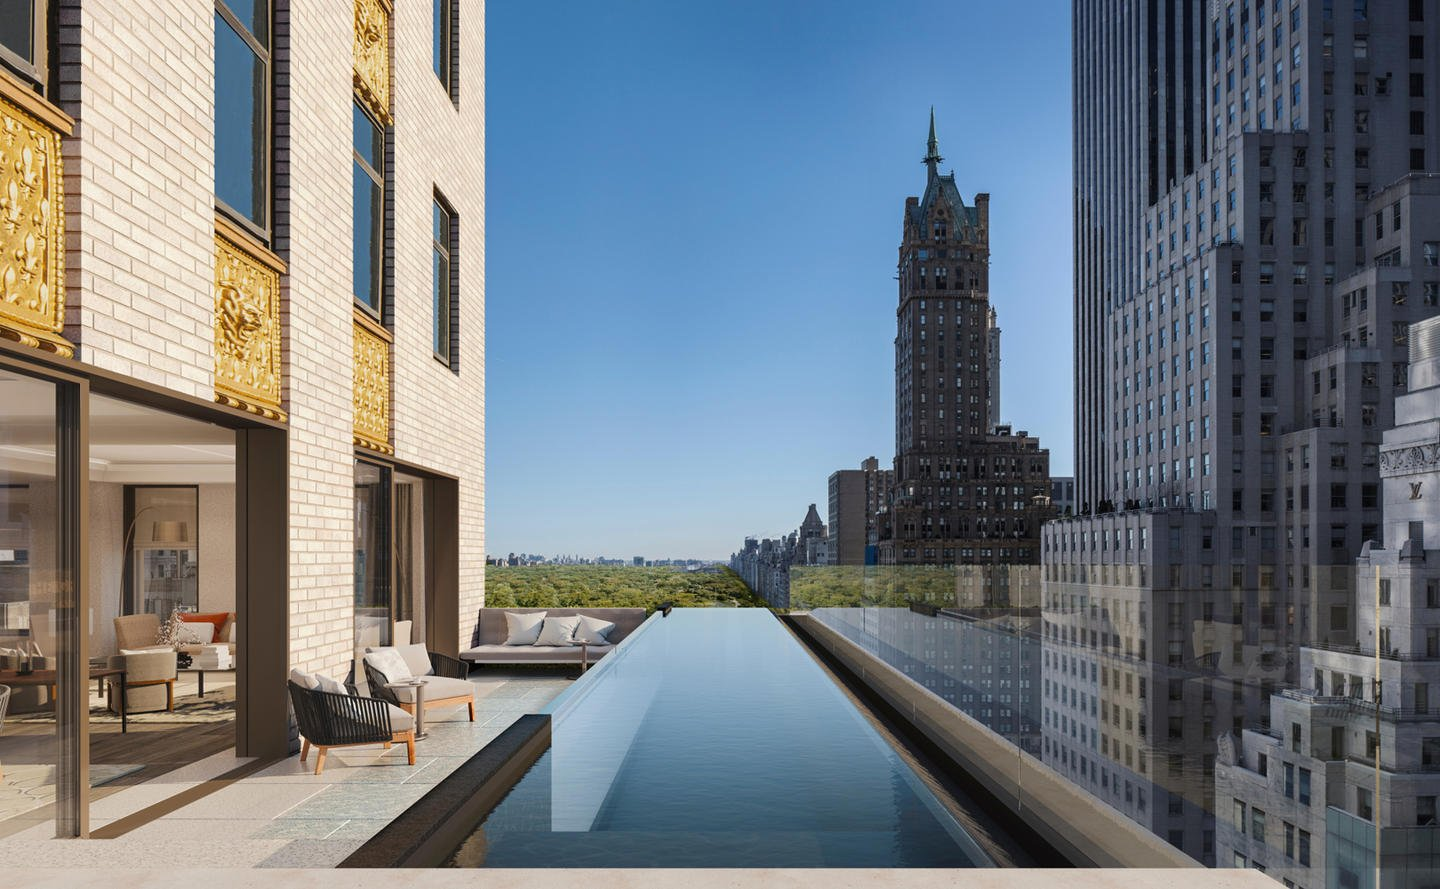 View of New York City from room Aman Hotel New York which is flanked by a pool.